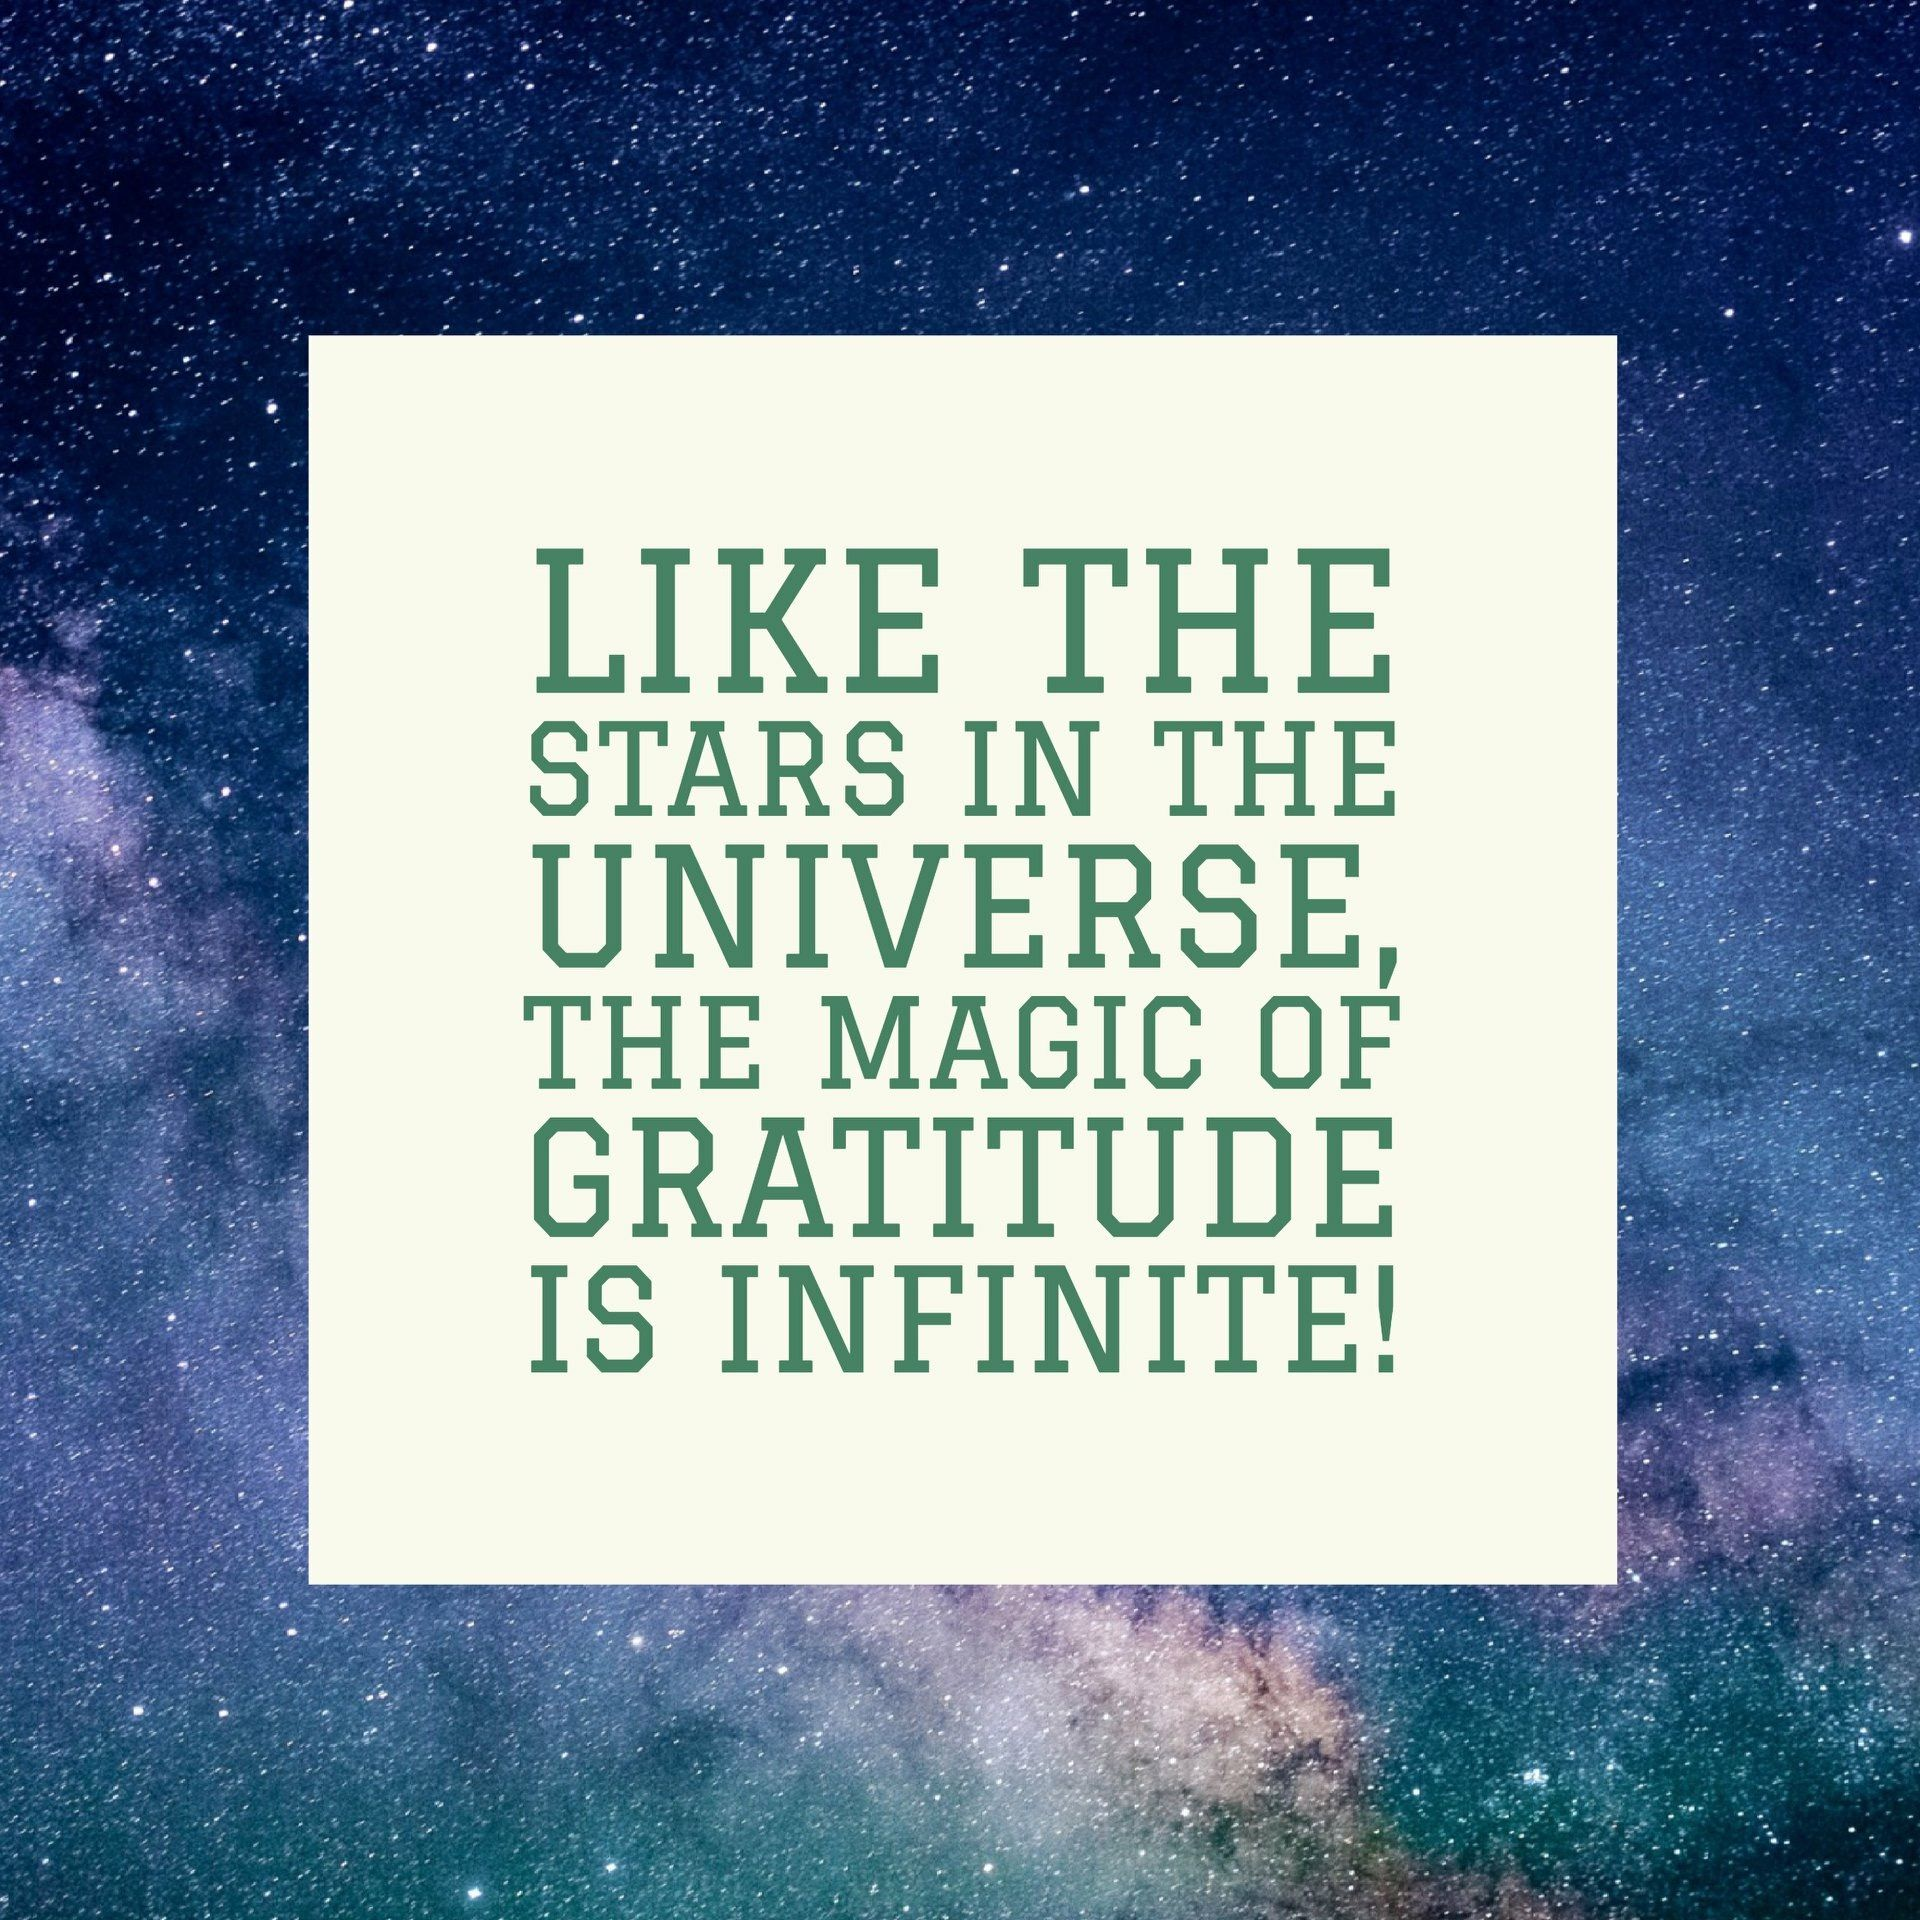 Pin by JoAnn Puff on Gratitude Inspirational quotes